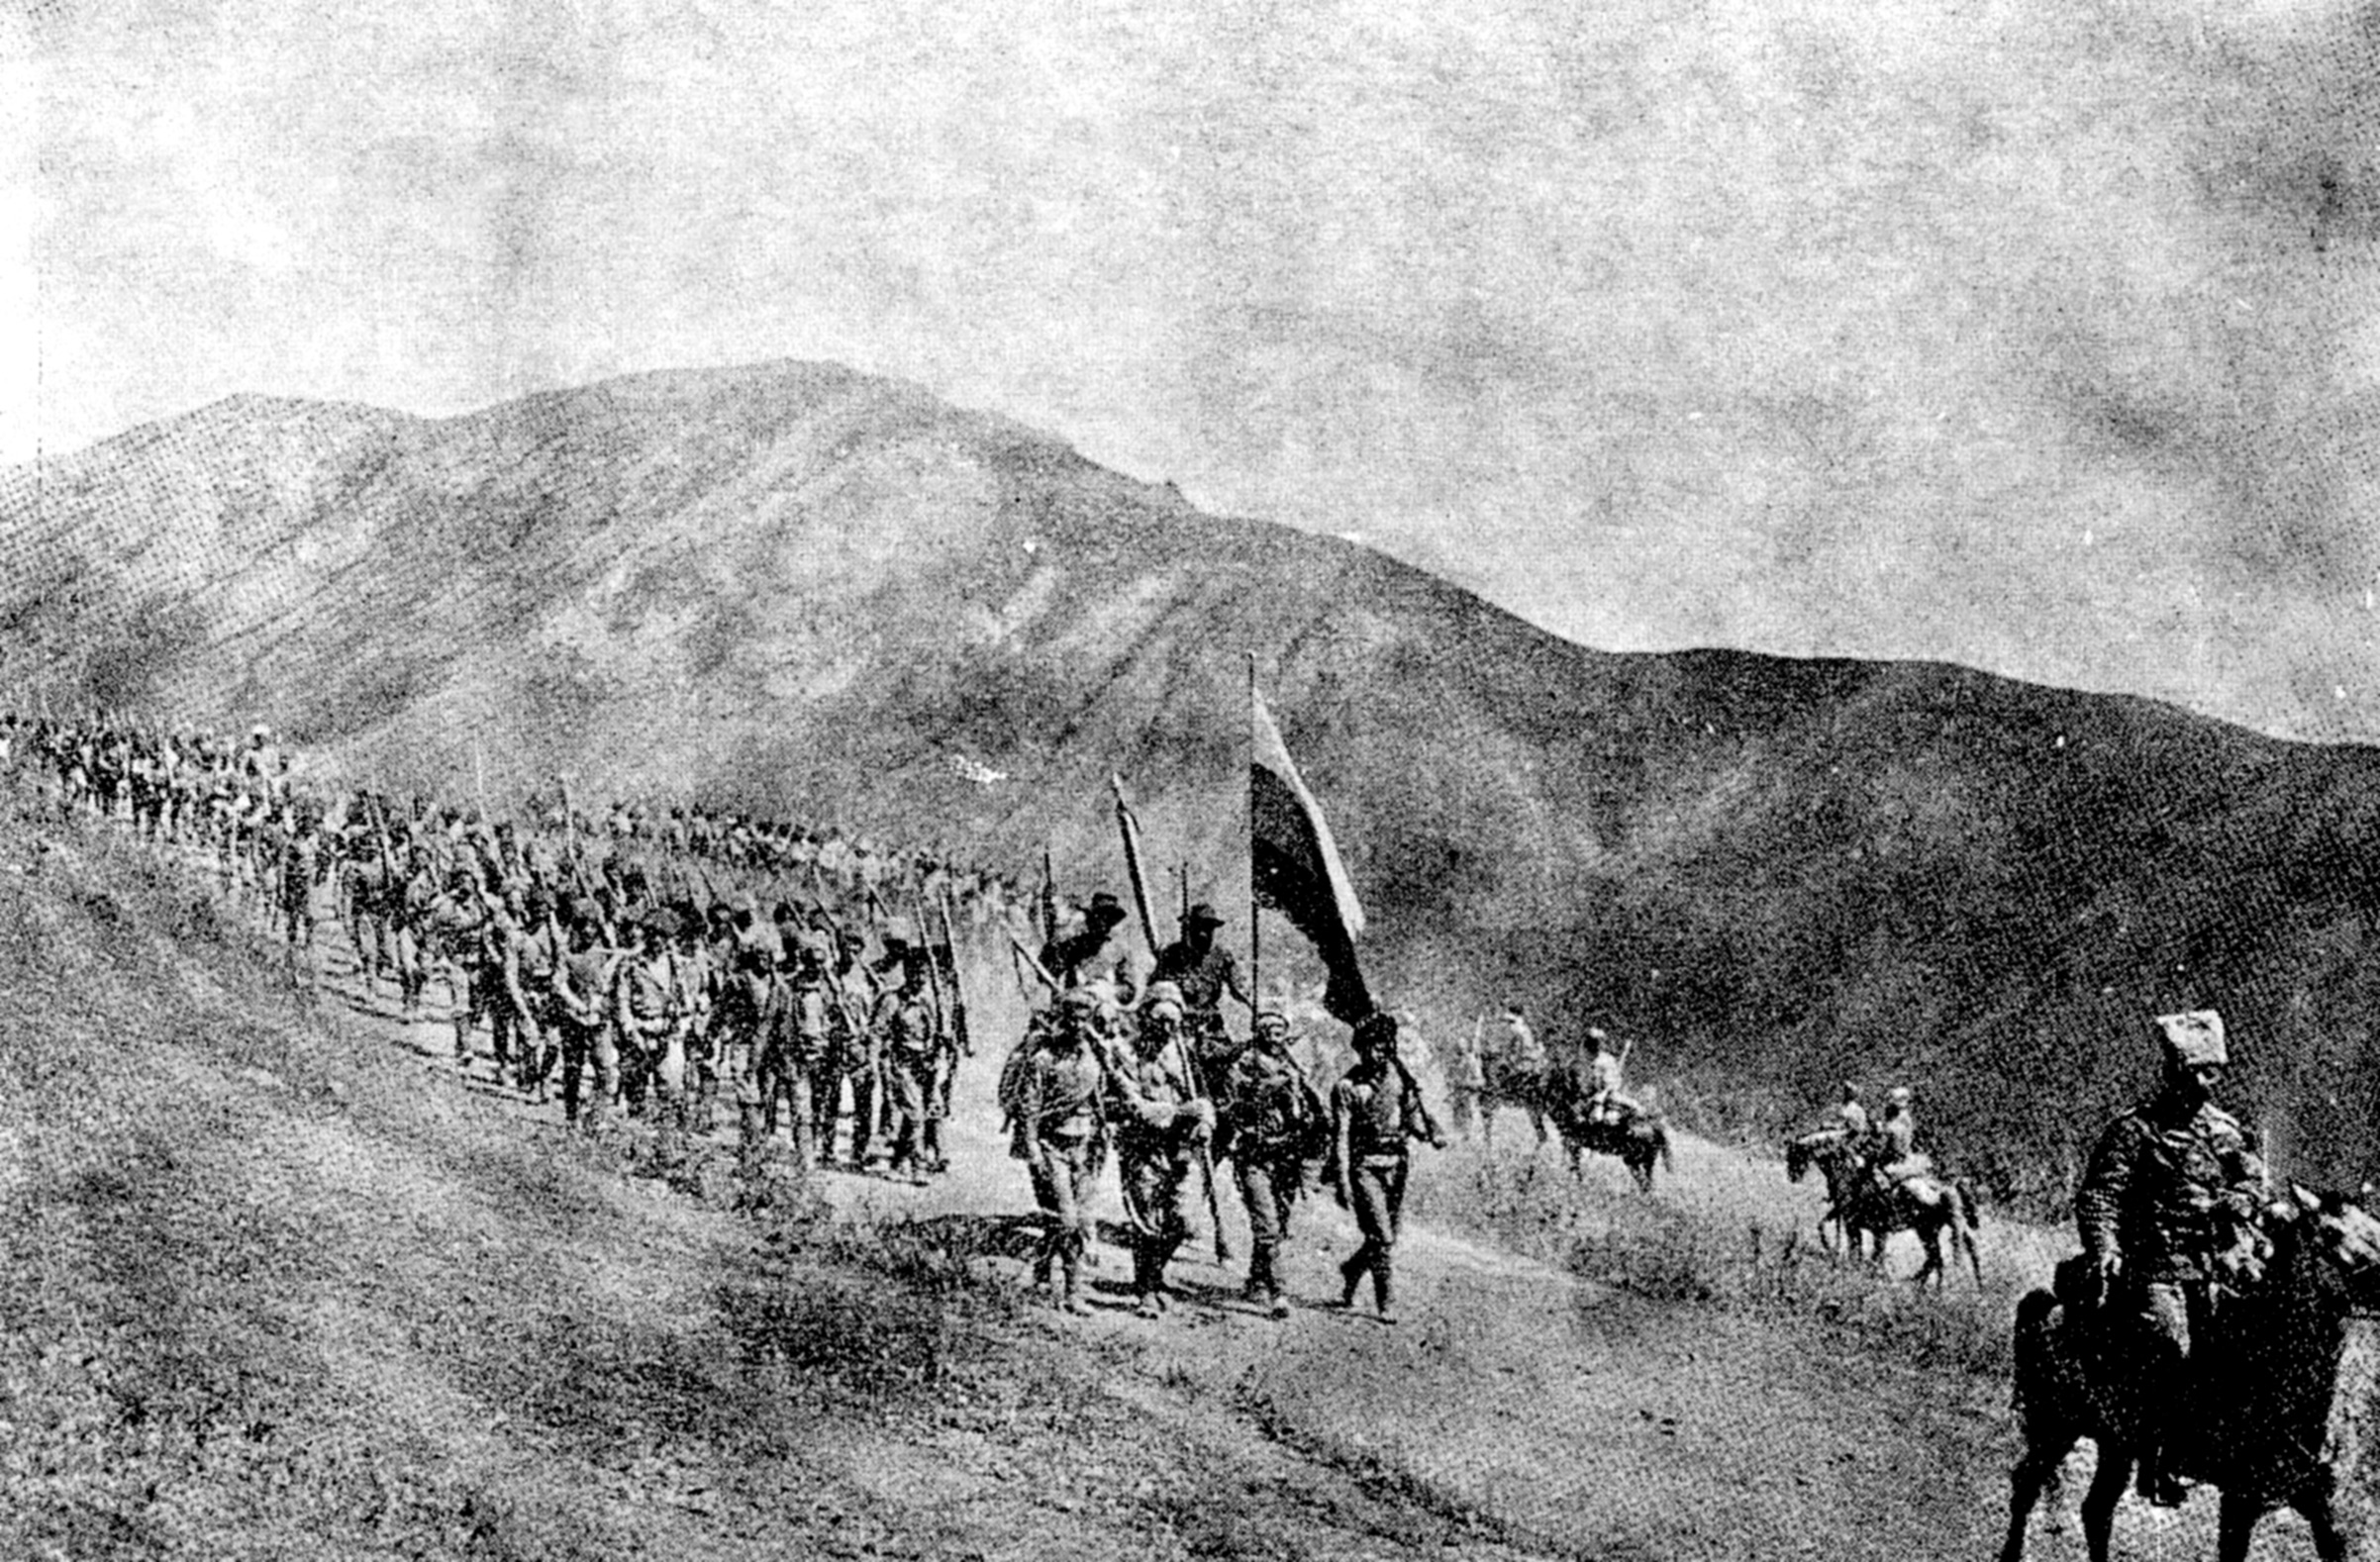 Armenian rebels slaughtered myriads of Turkish and Kurdish Ottoman citizens in East Anatolia.